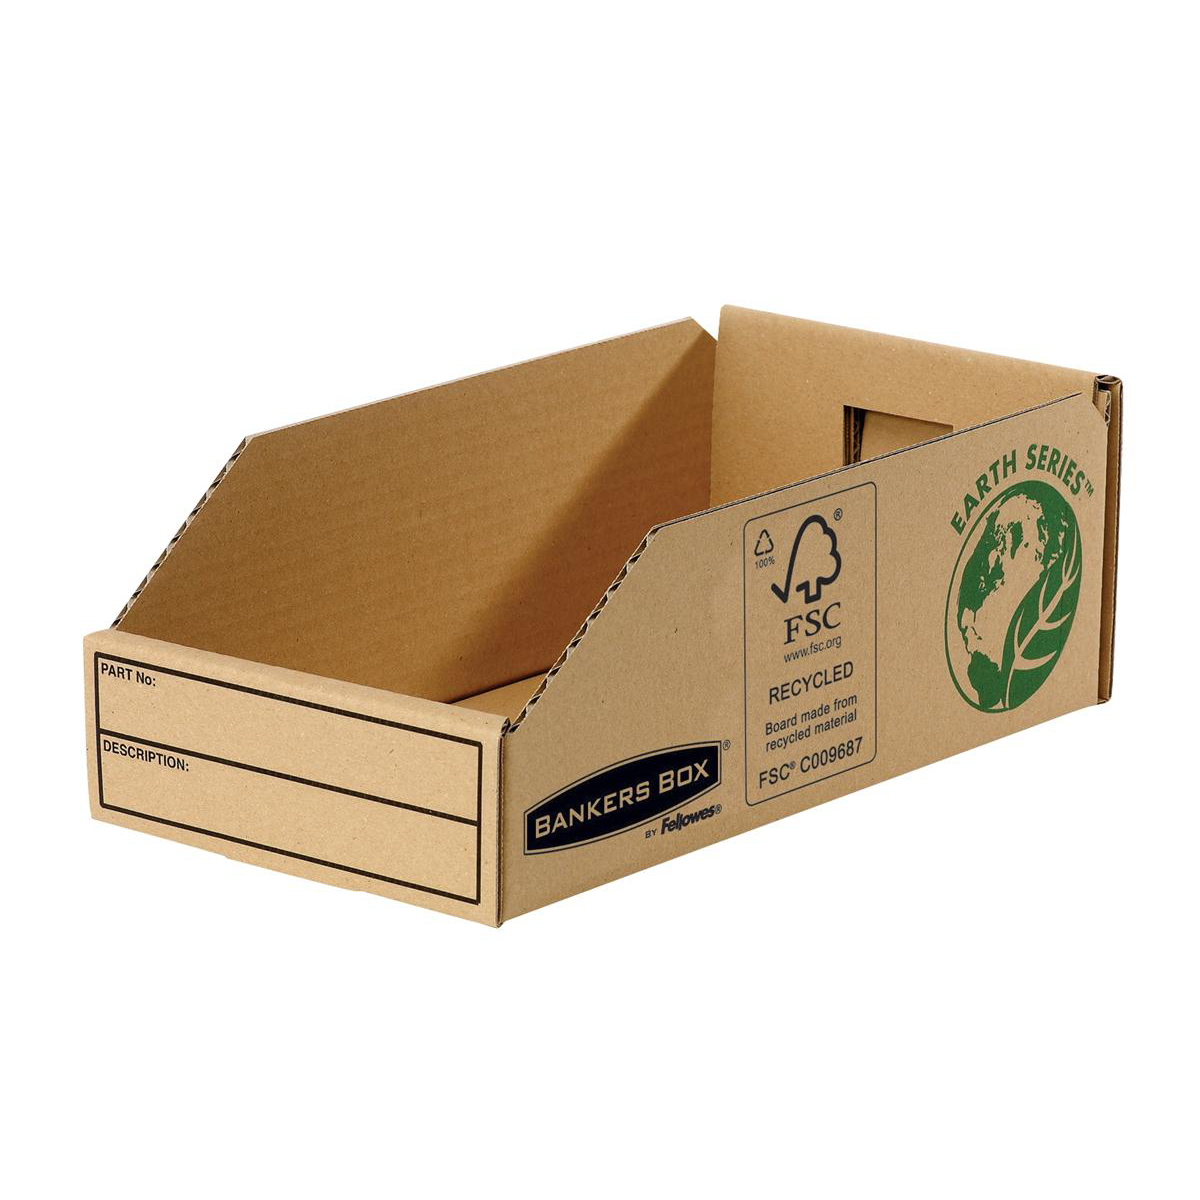 Containers Bankers Box by Fellowes Parts Bin Corrugated Fibreboard Packed Flat W147xD280xH102mm Ref 07354 Pack 50